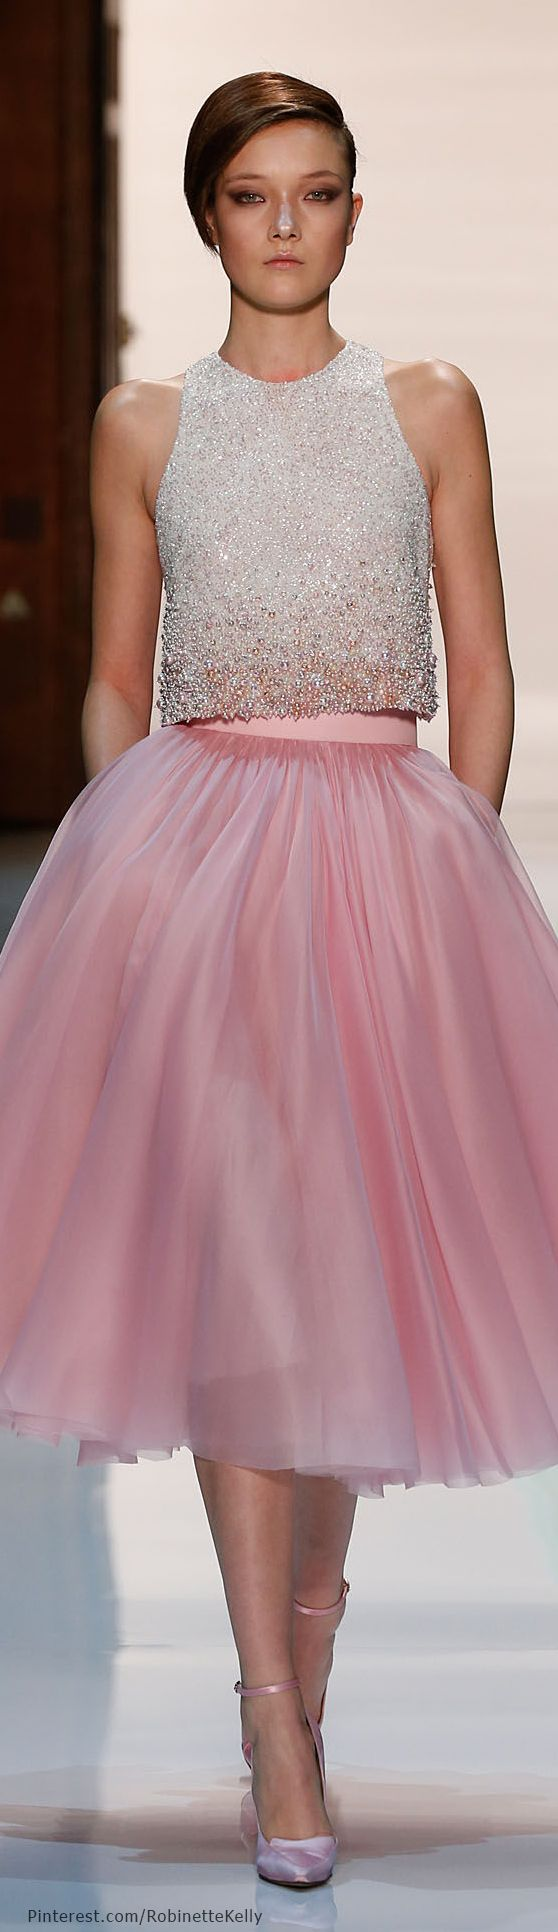 Georges Hobieka Haute Couture   My Style   Pinterest   Pedreria ...